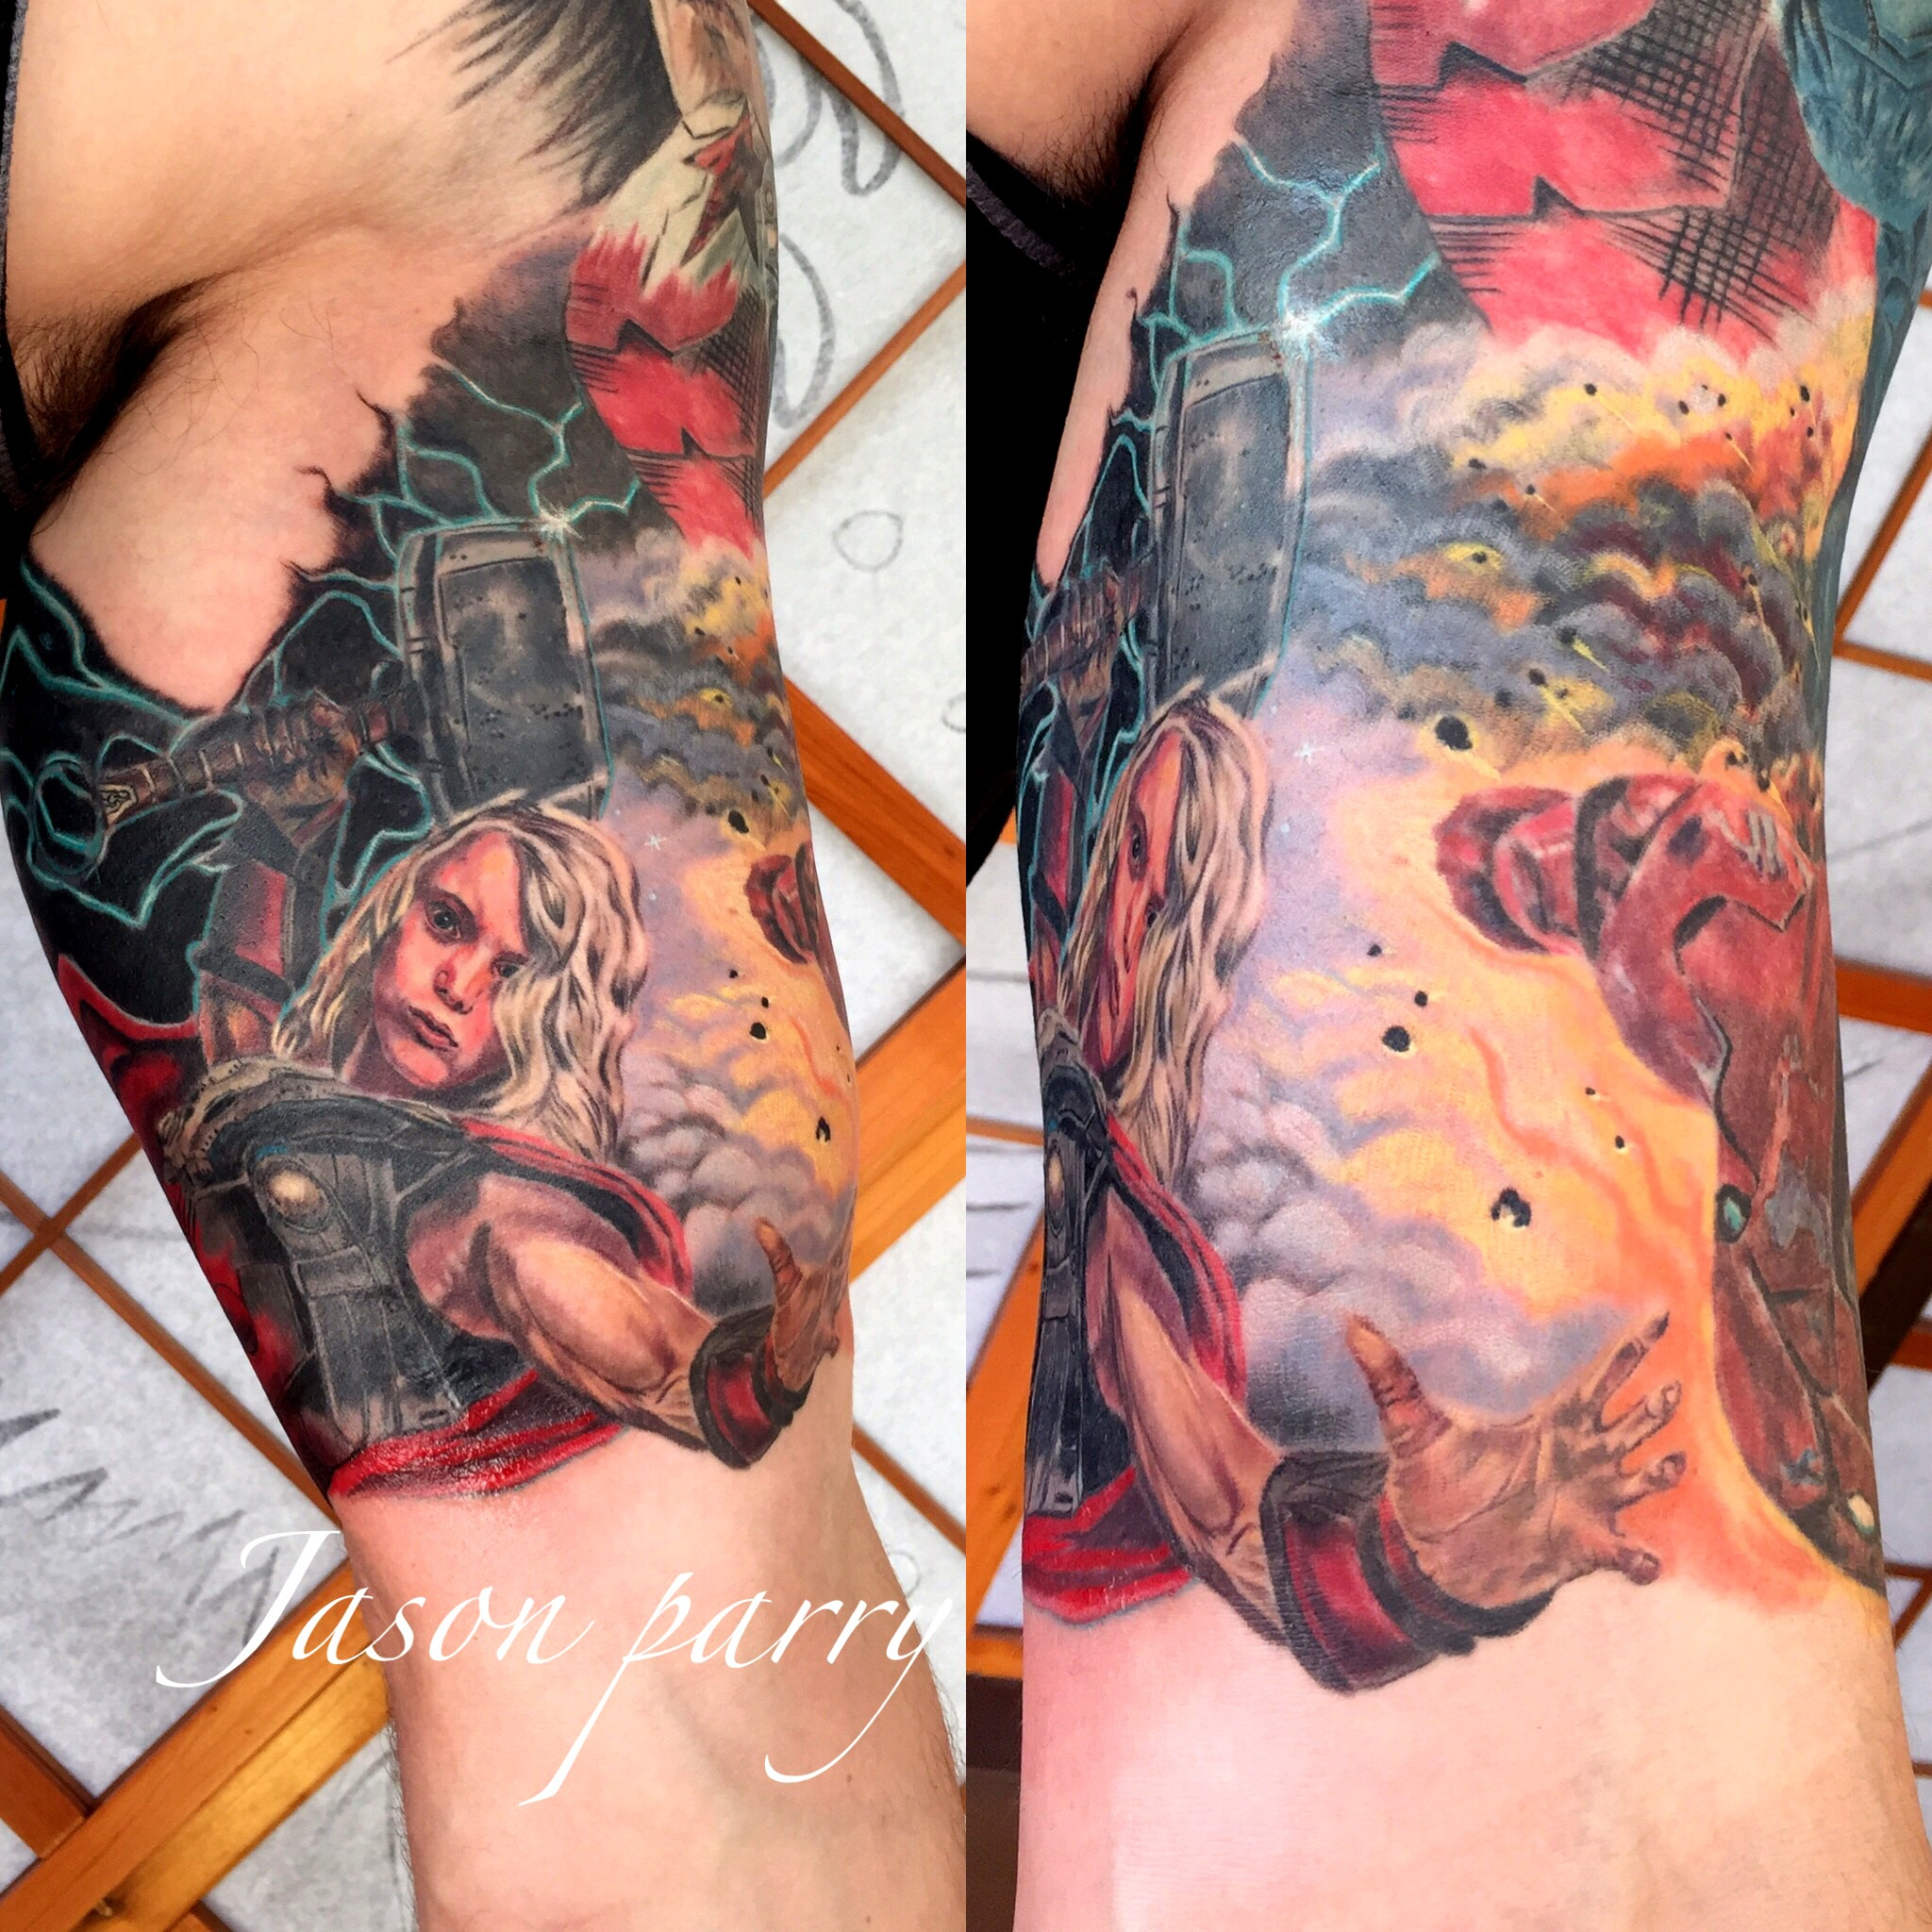 avengers 1 tattoo jason parry